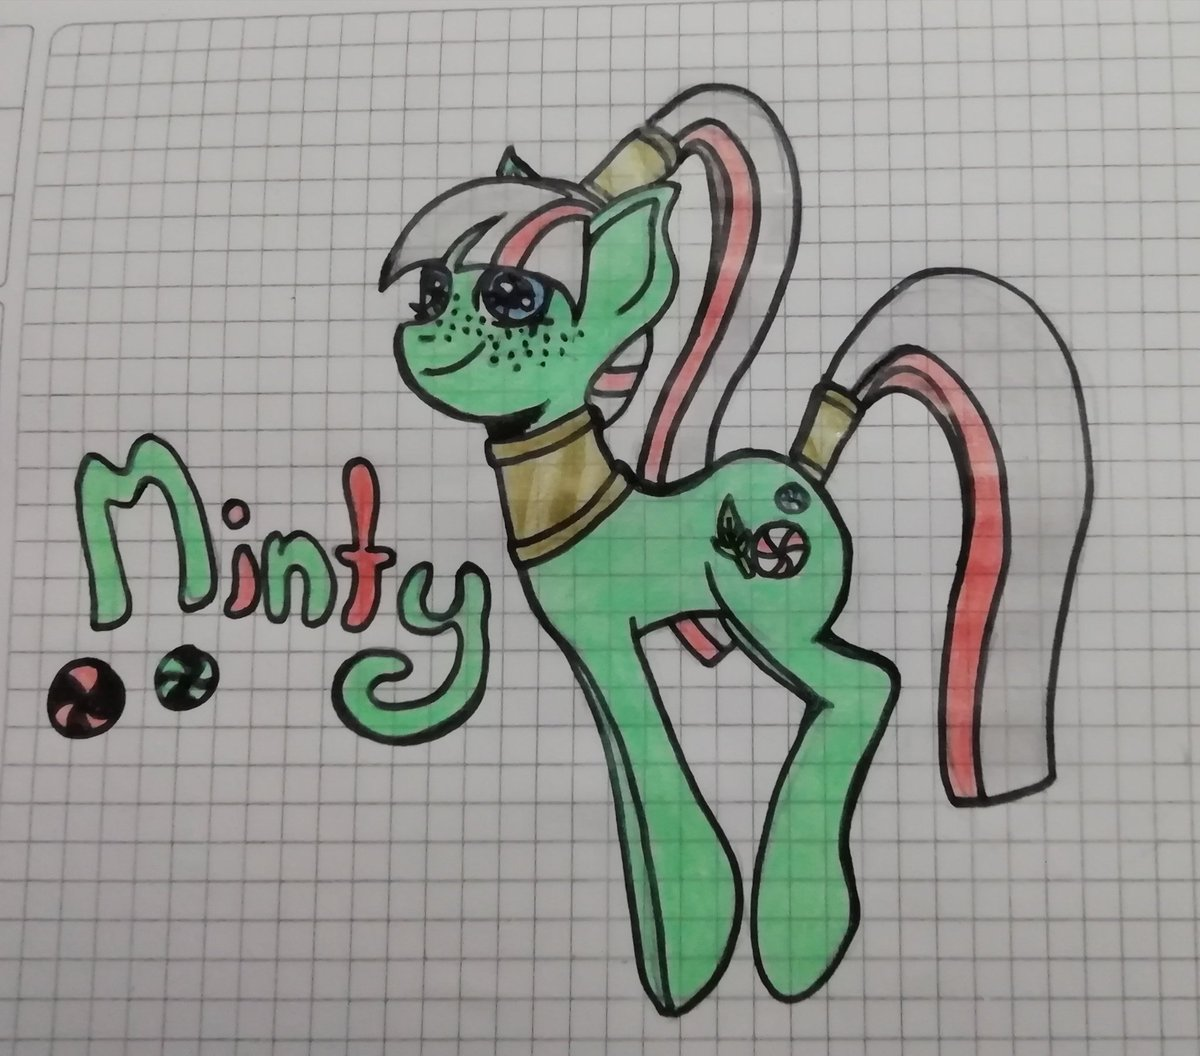 Redesign of Minty of the original six from #mylittlepony of the G1 (Also I took a little of her design in G3) #pony #artpic.twitter.com/F7LIRR7P2x